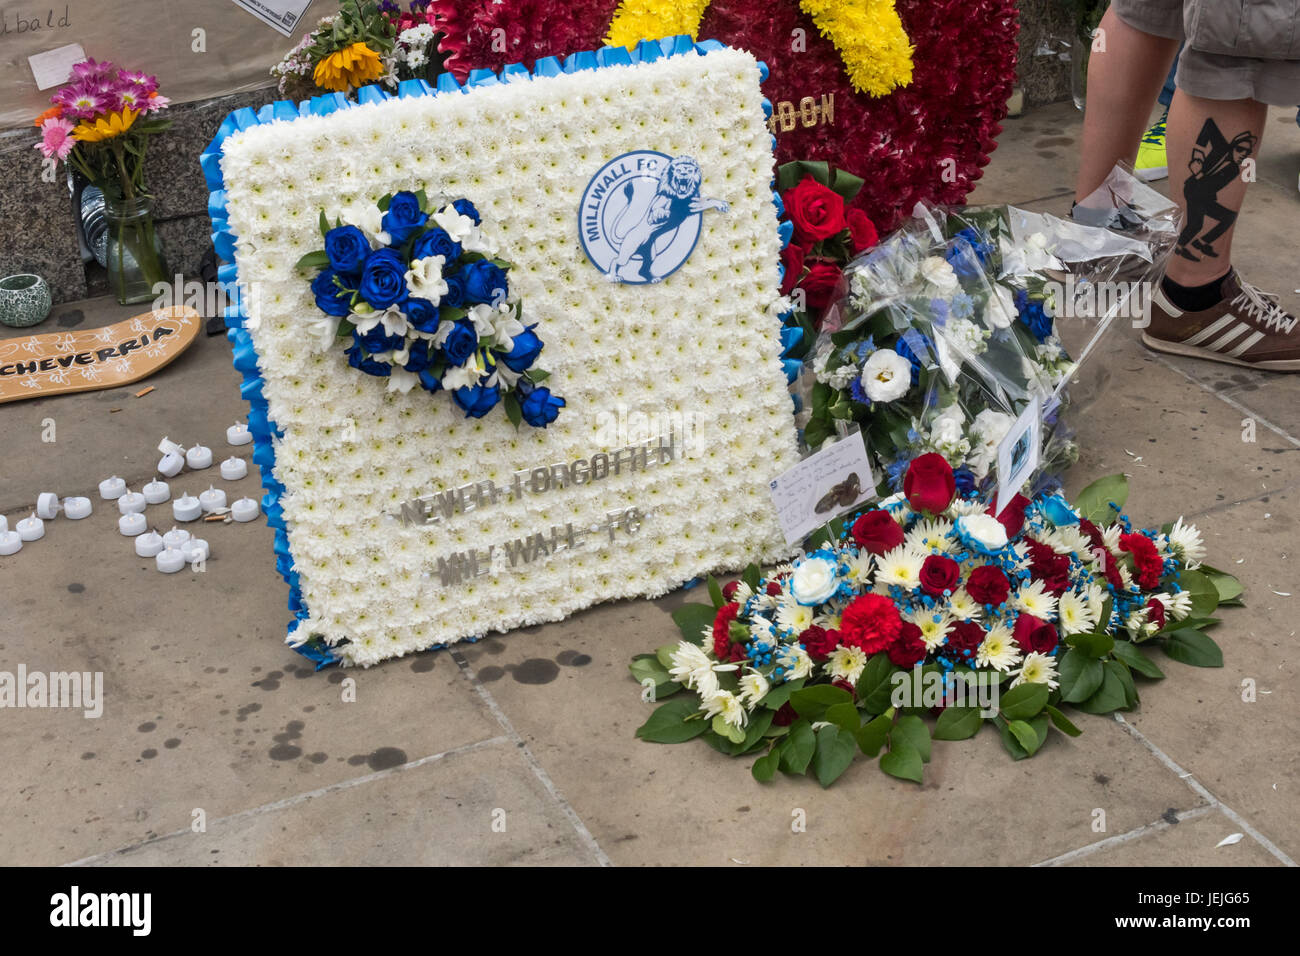 June 24 2017 london uk london uk 24th september 2017 wreaths and flowers from fans of millwall west ham and portsmouth on london bridge after the march by well over izmirmasajfo Images